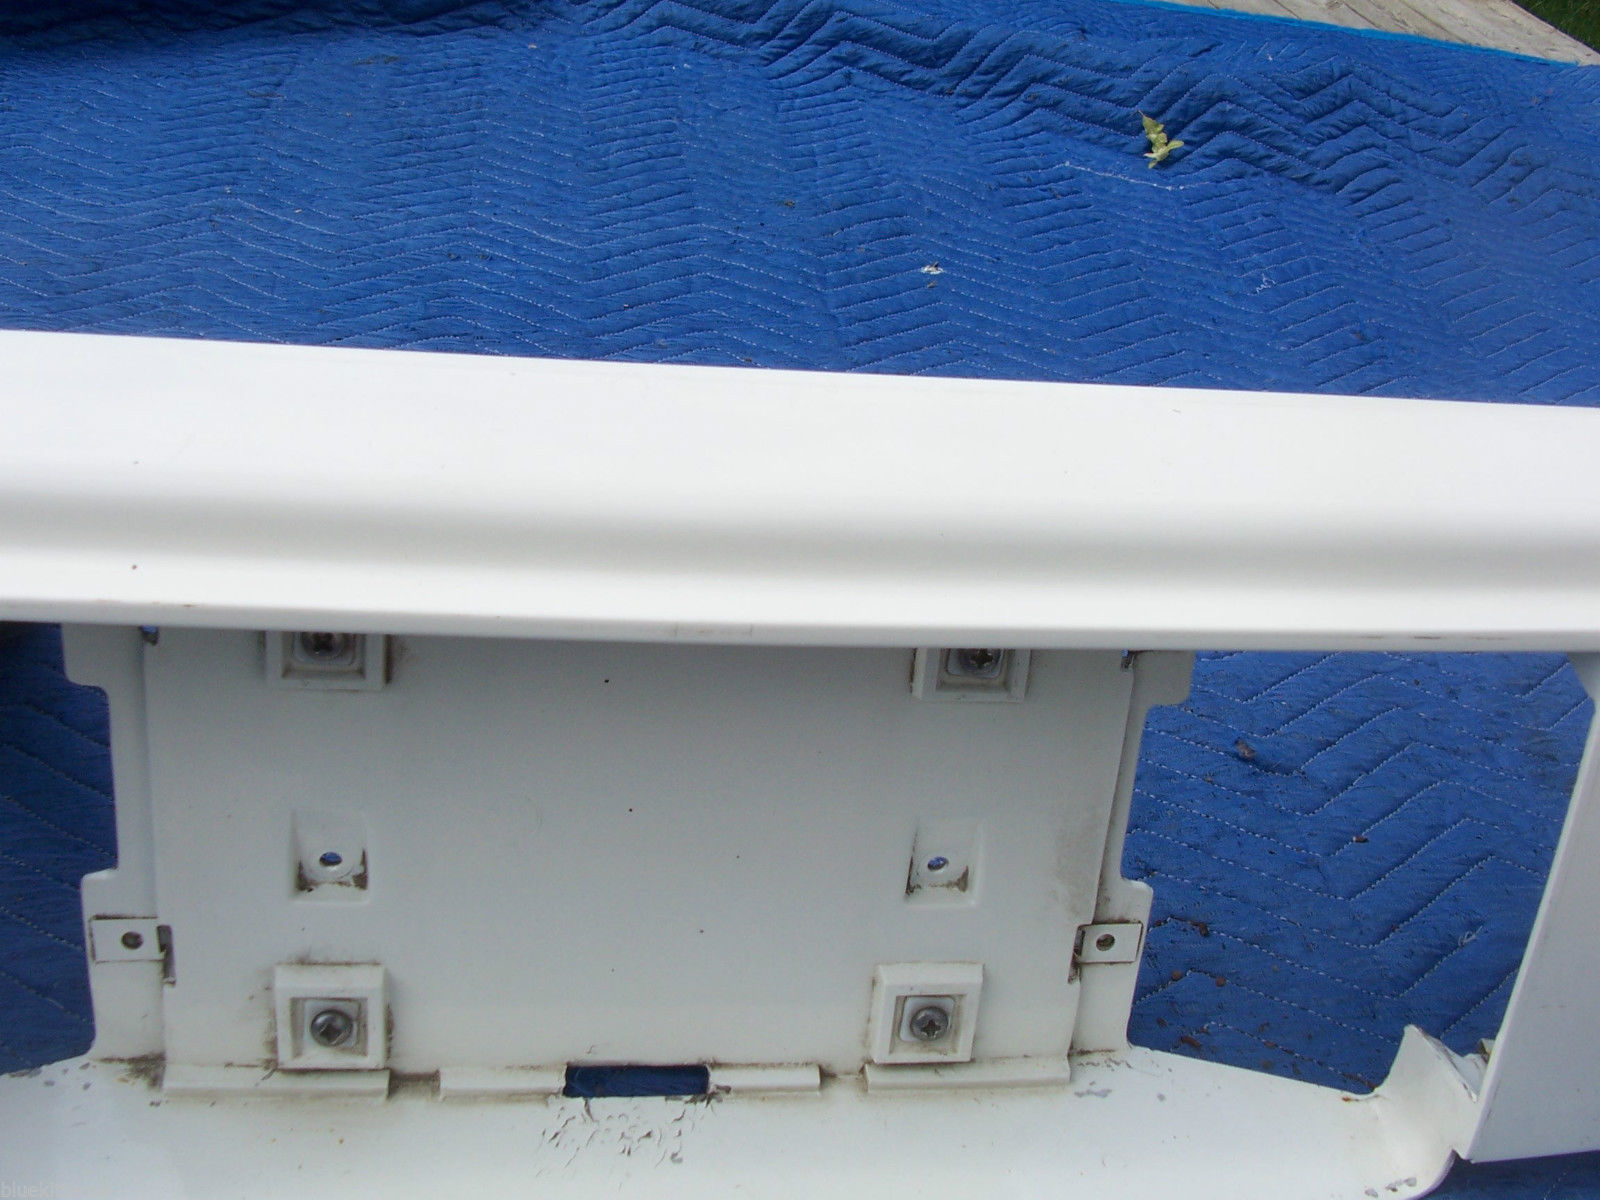 1985 FLEETWOOD FWD TRUNK TAIL FILLER VALANCE PANEL OEM USED ORIG CADILLAC GM #